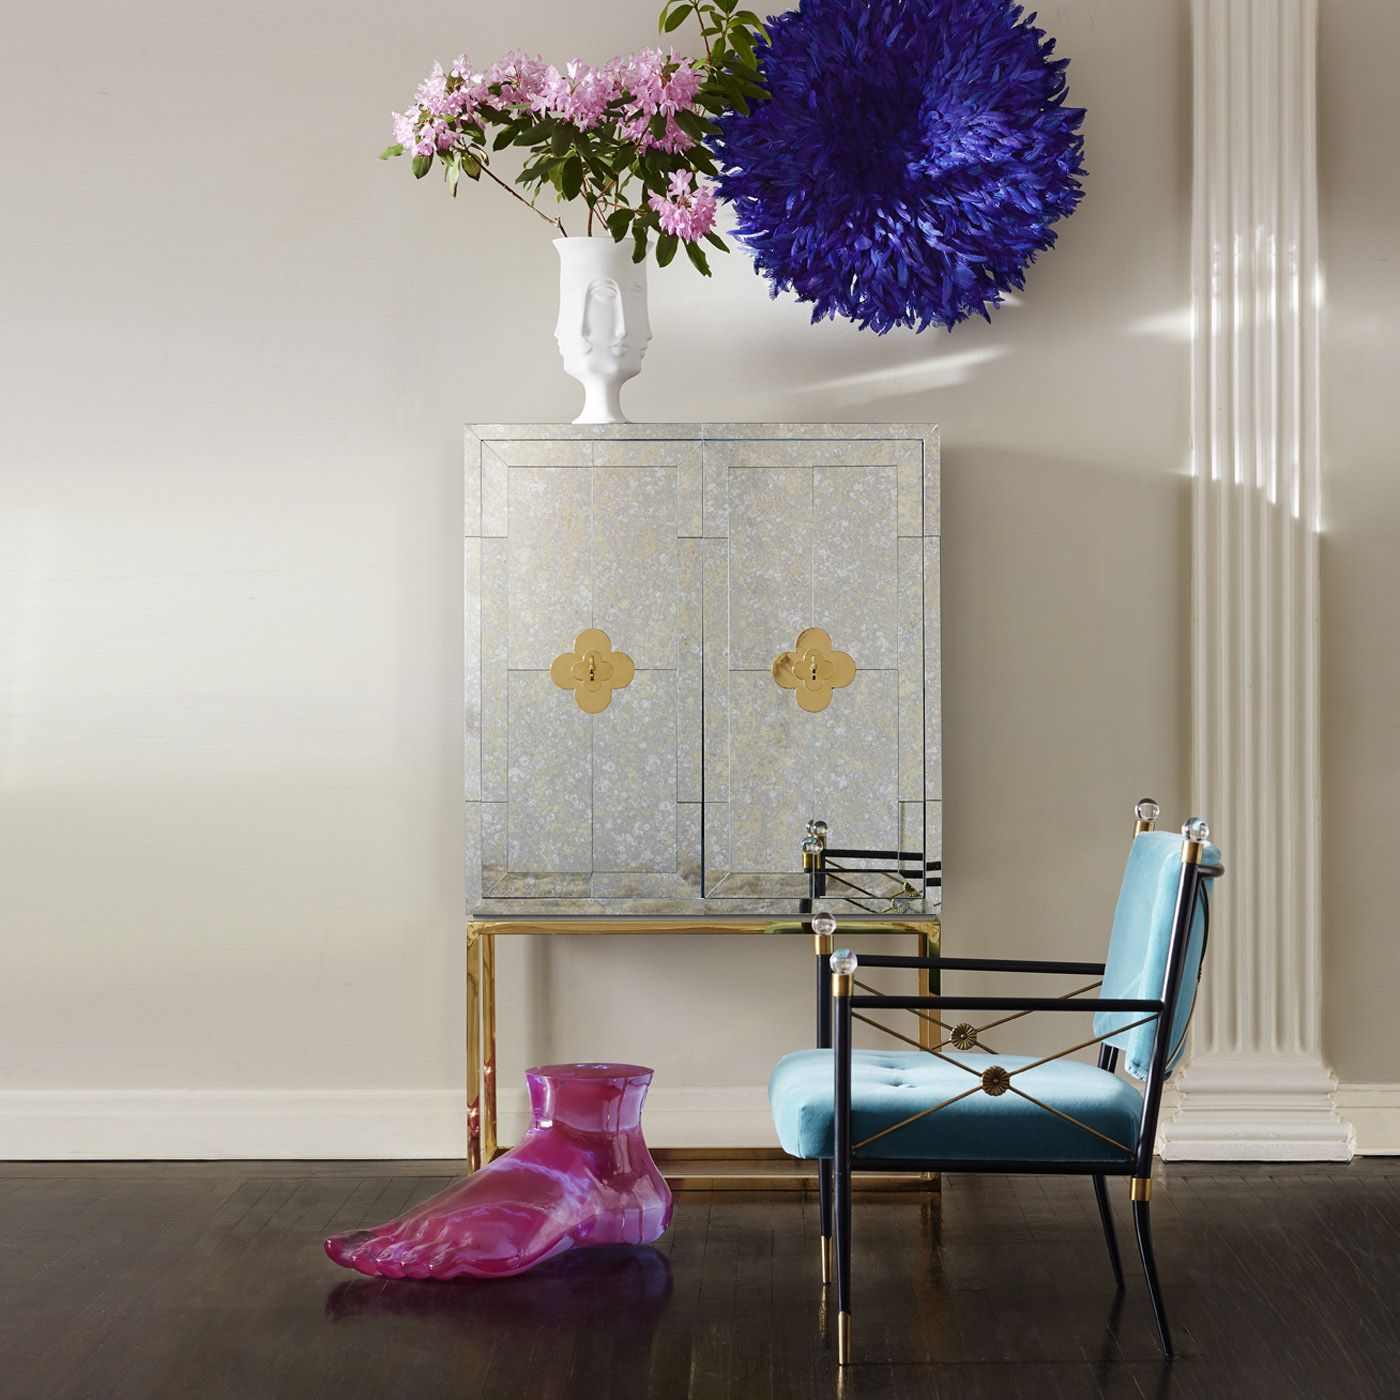 Jonathan Adler | Interior design trends for 2015 #interiordesignideas #trendsdesign For more inspirations: http://www.bykoket.com/news/category/interior-design